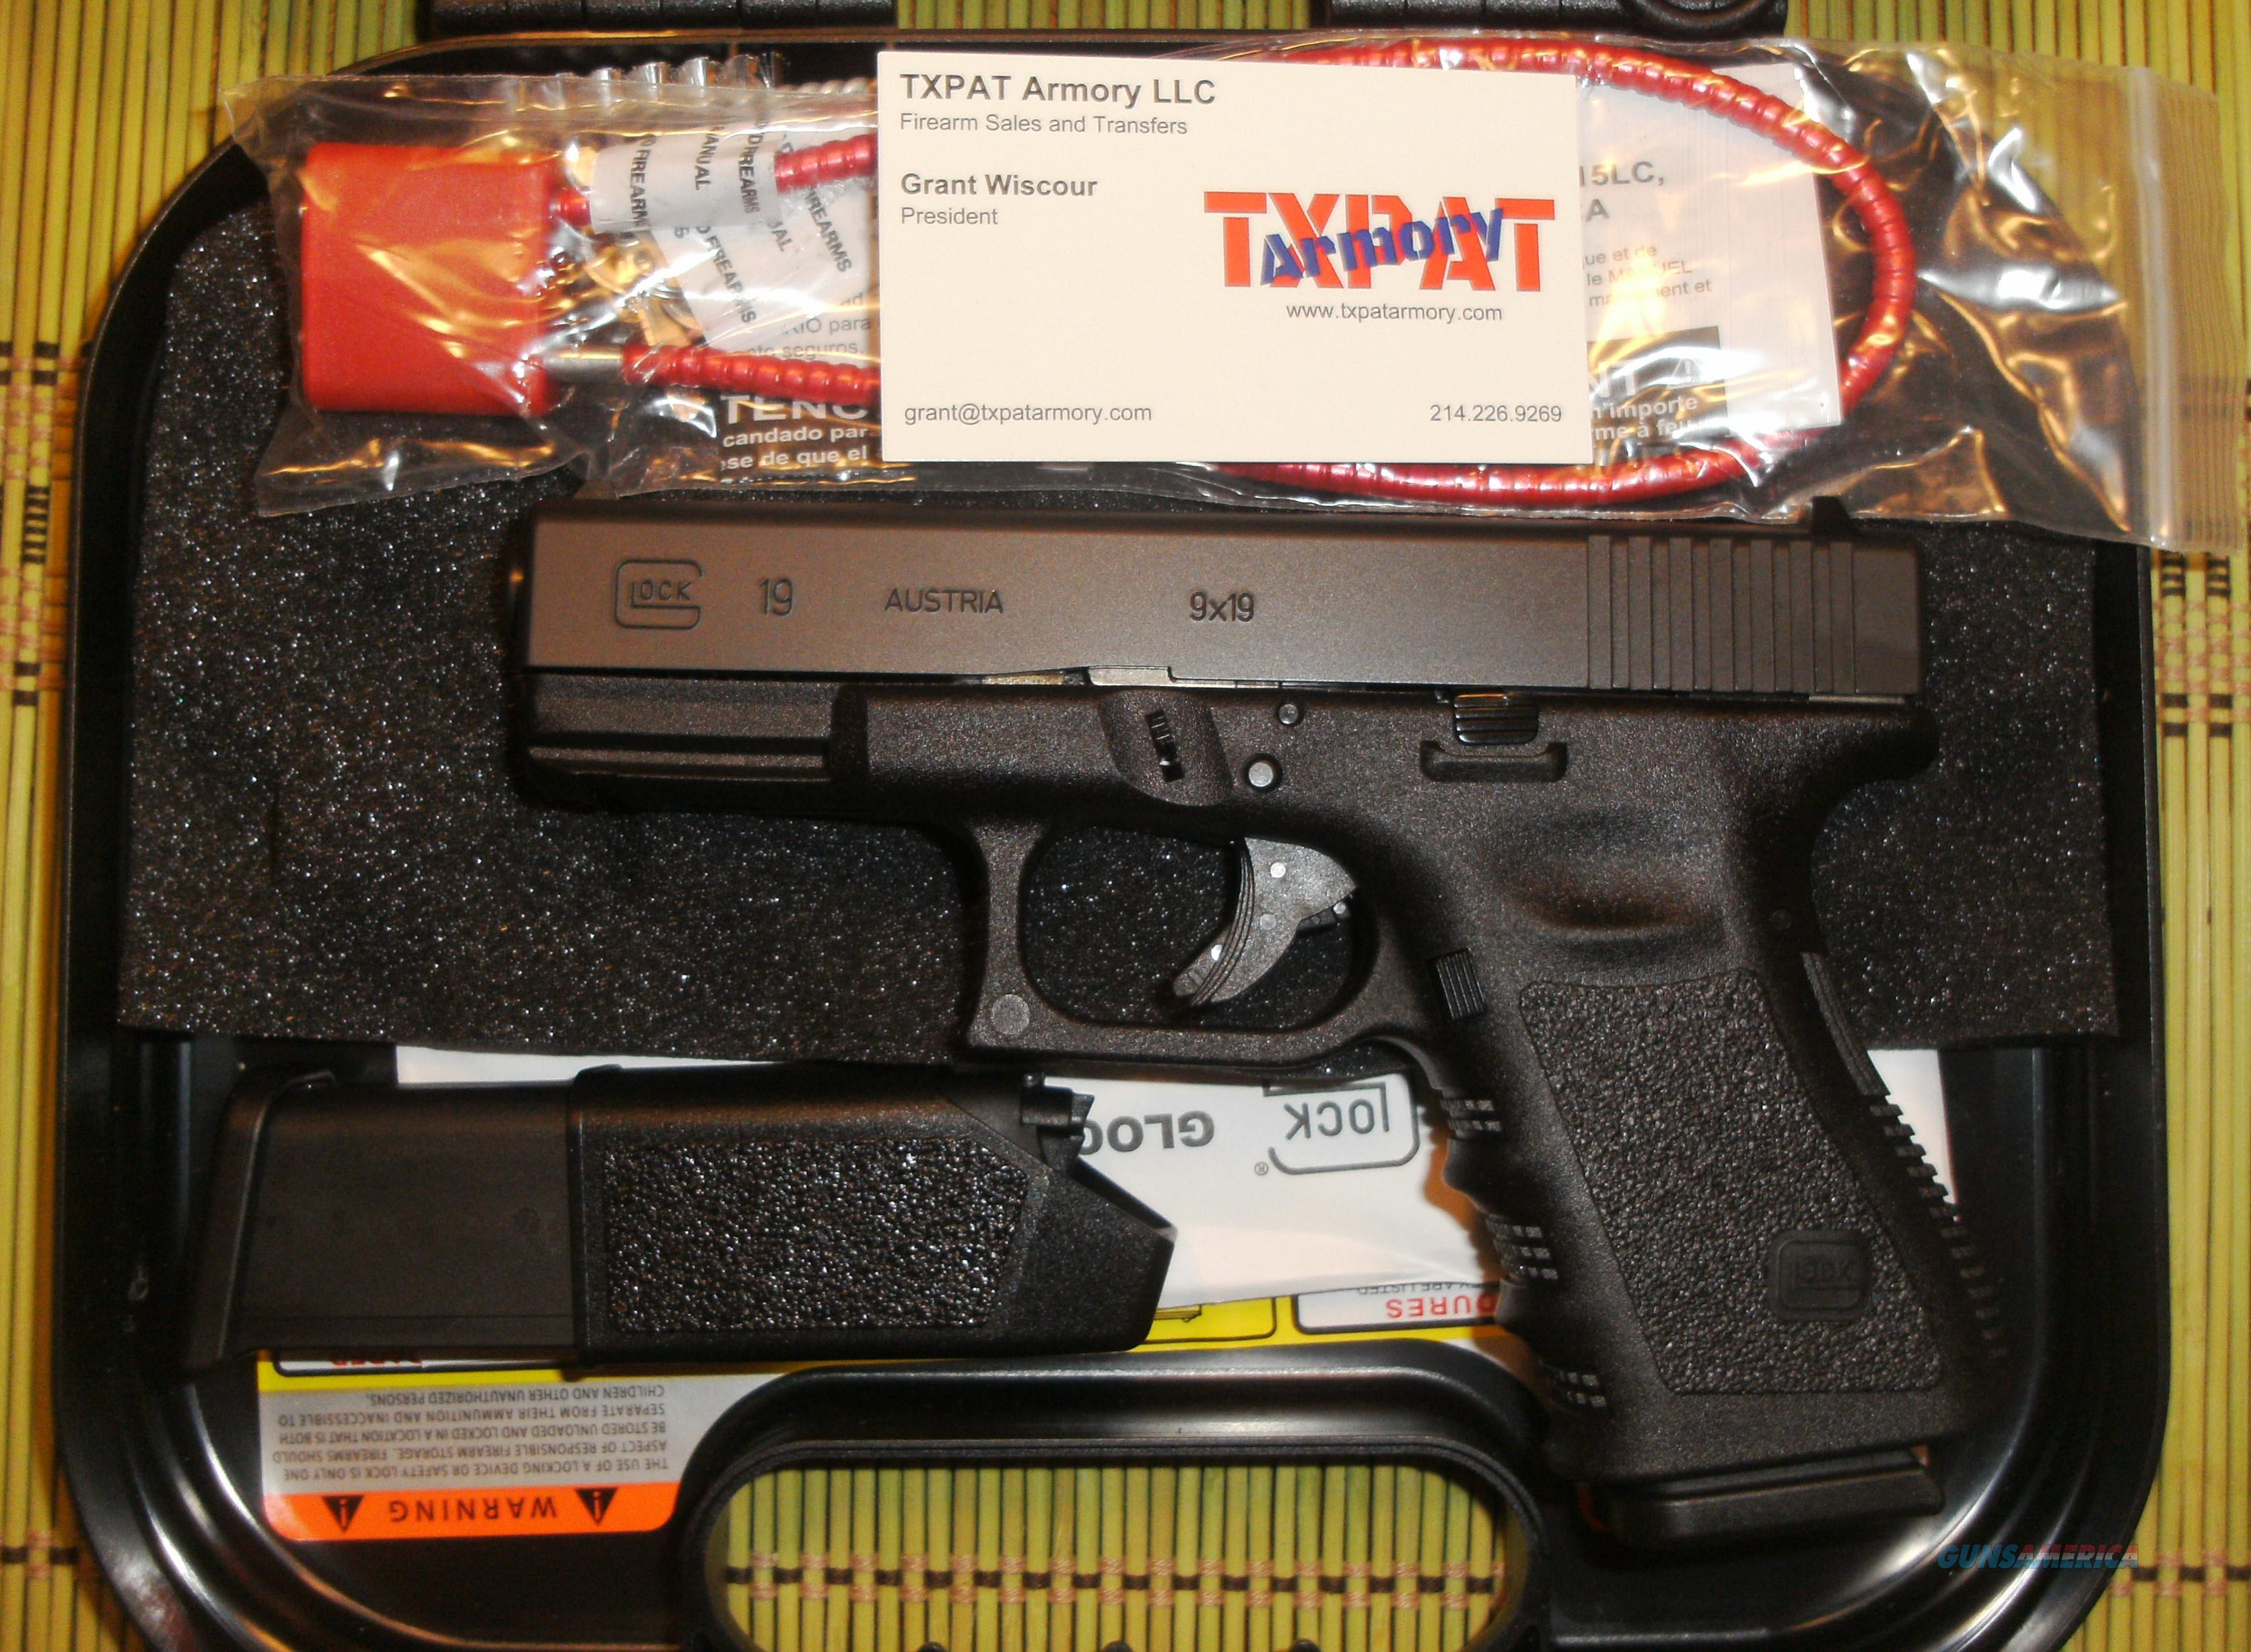 GLOCK 19 GEN 3 - NEW IN CASE WITH TWO MAGS - BUY IT NOW  Guns > Pistols > Glock Pistols > 19